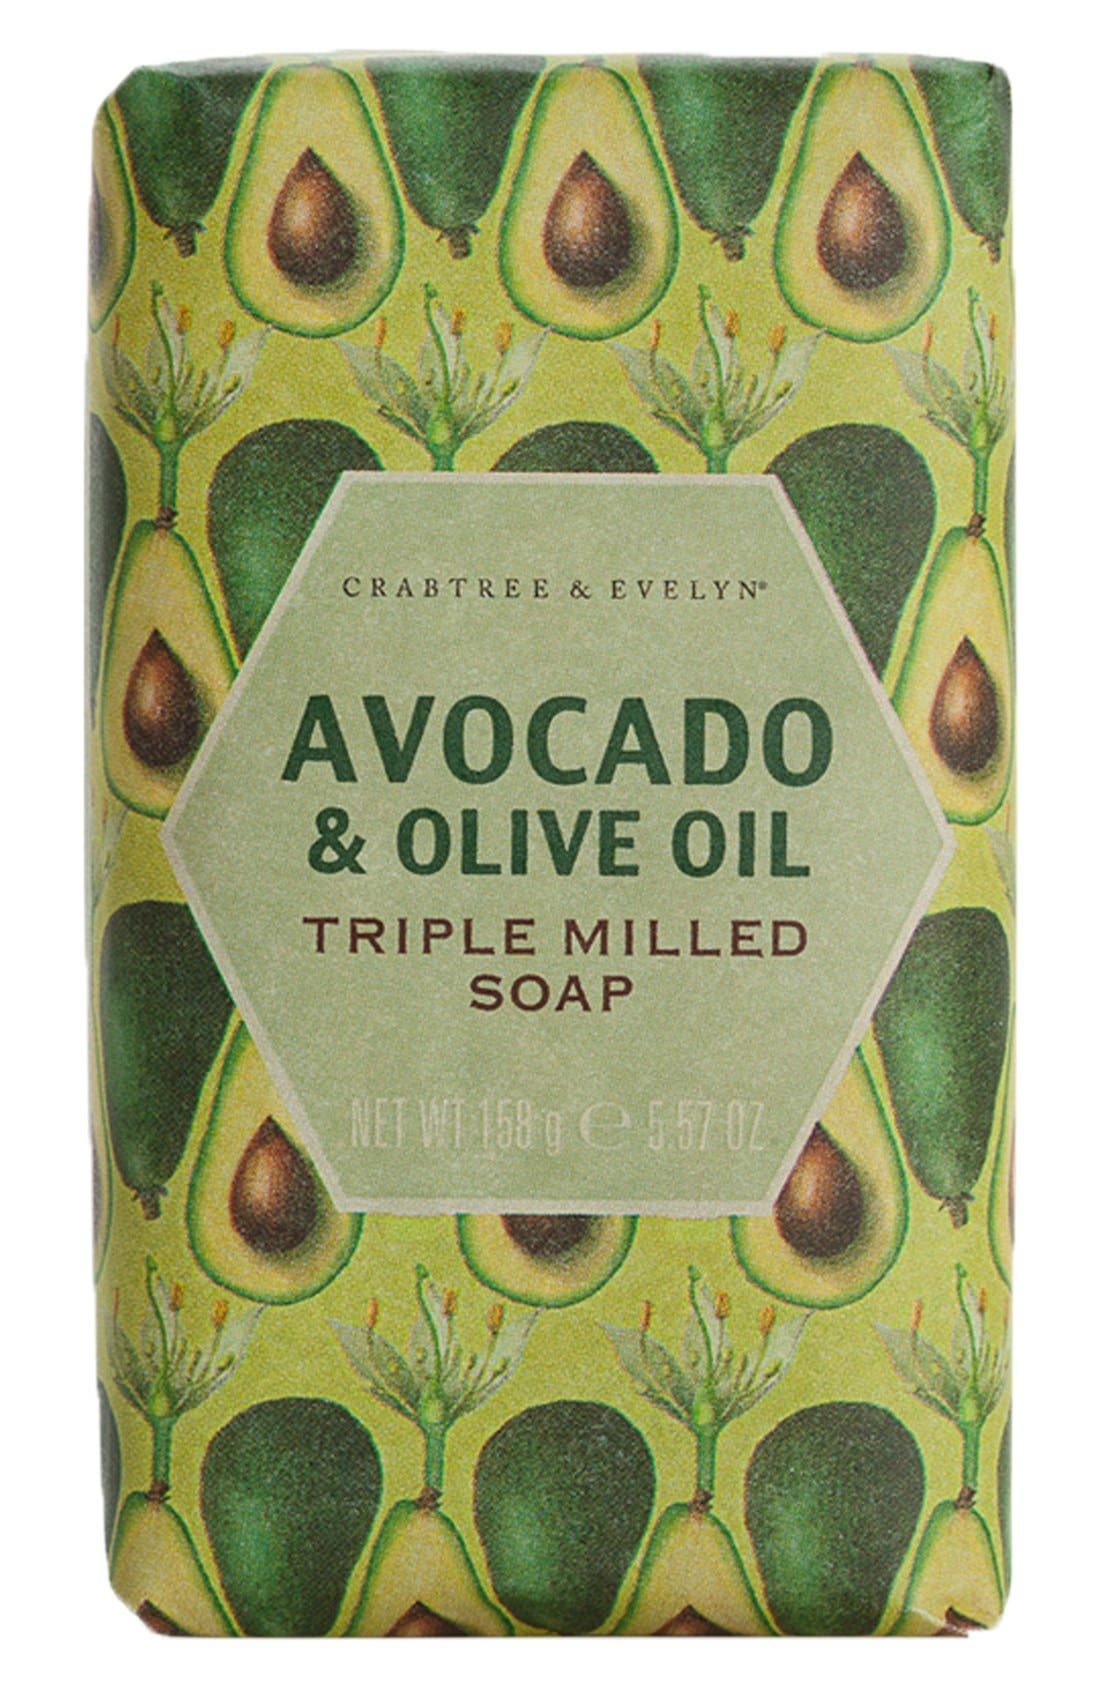 Crabtree & Evelyn 'Avocado & Olive Oil' Triple Milled Soap